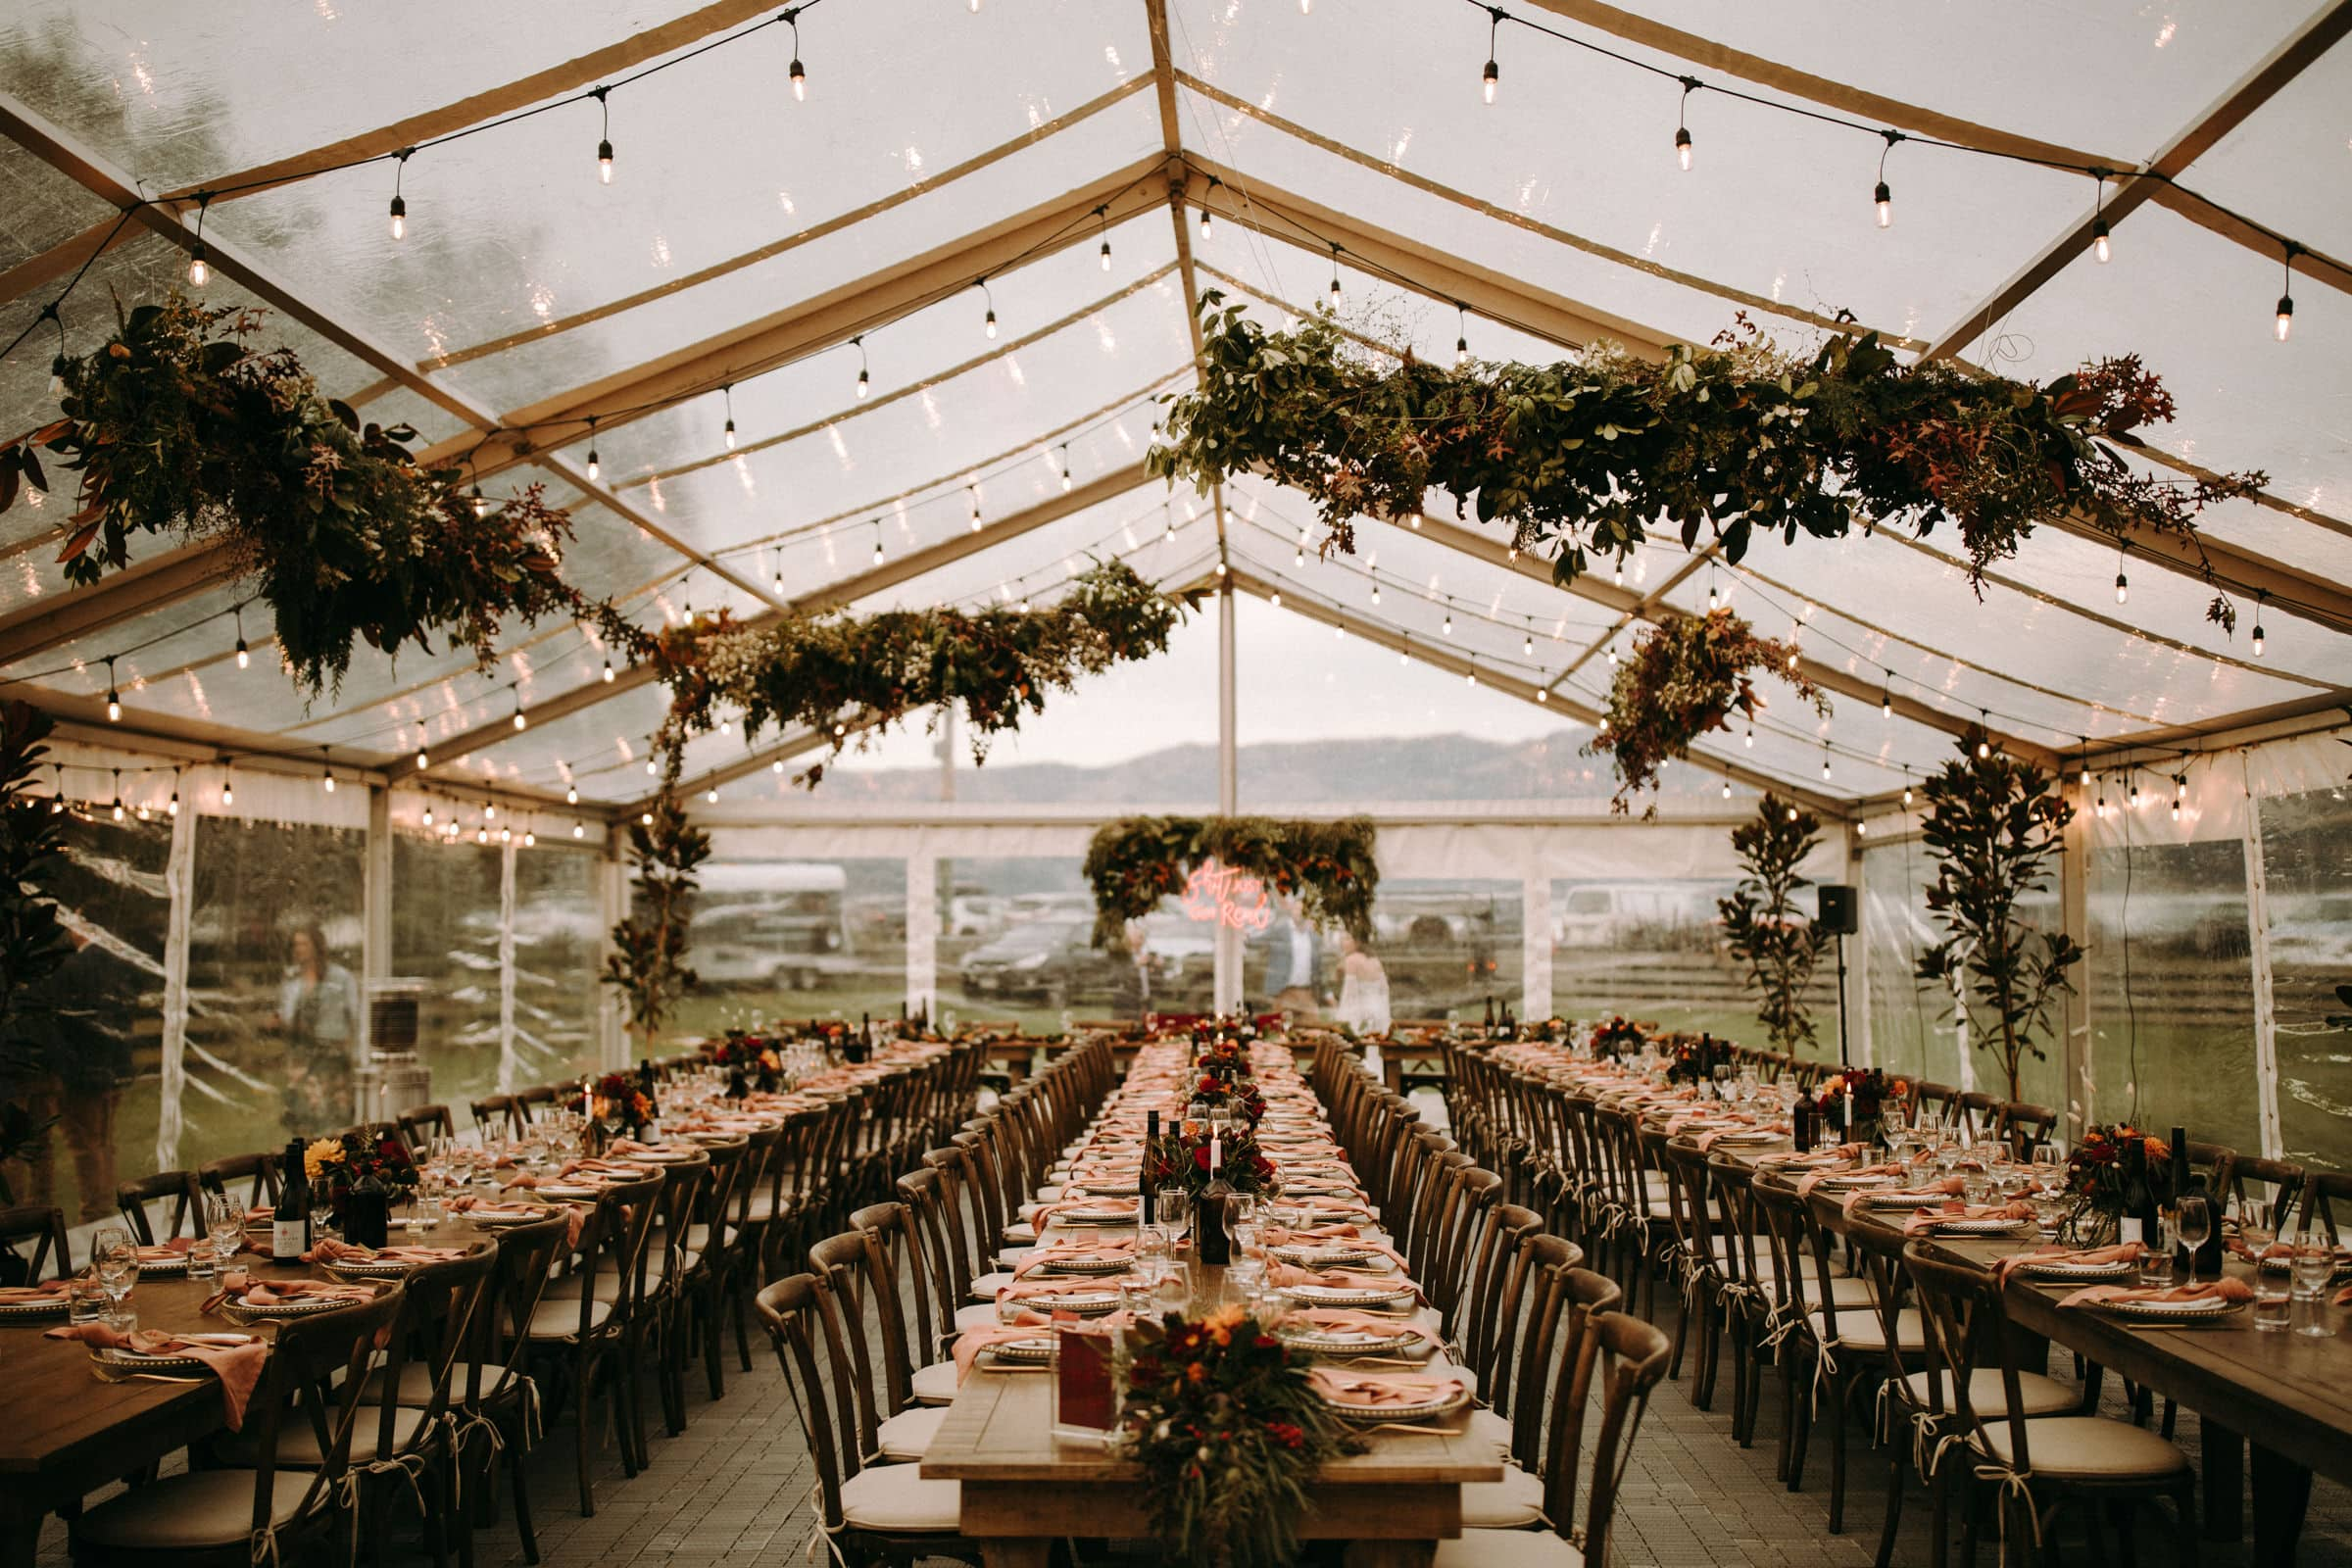 A big tent is decorated with light bulbs and branches and three rows of tables and chairs are located in it.